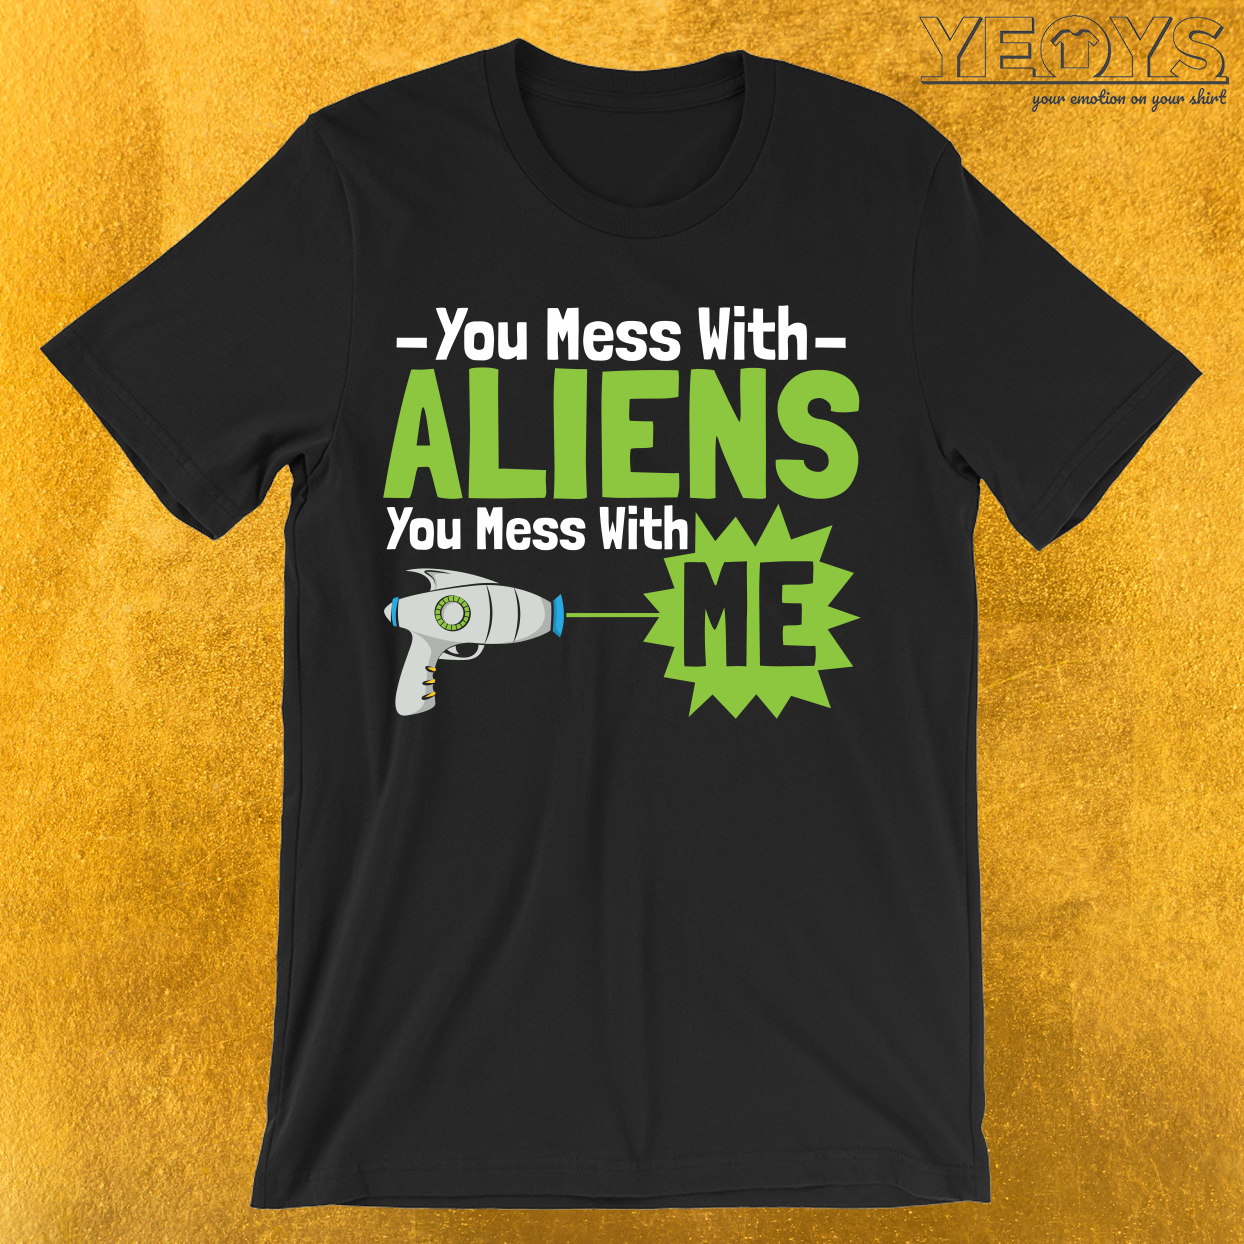 You Mess With Aliens You Mess With Me T-Shirt